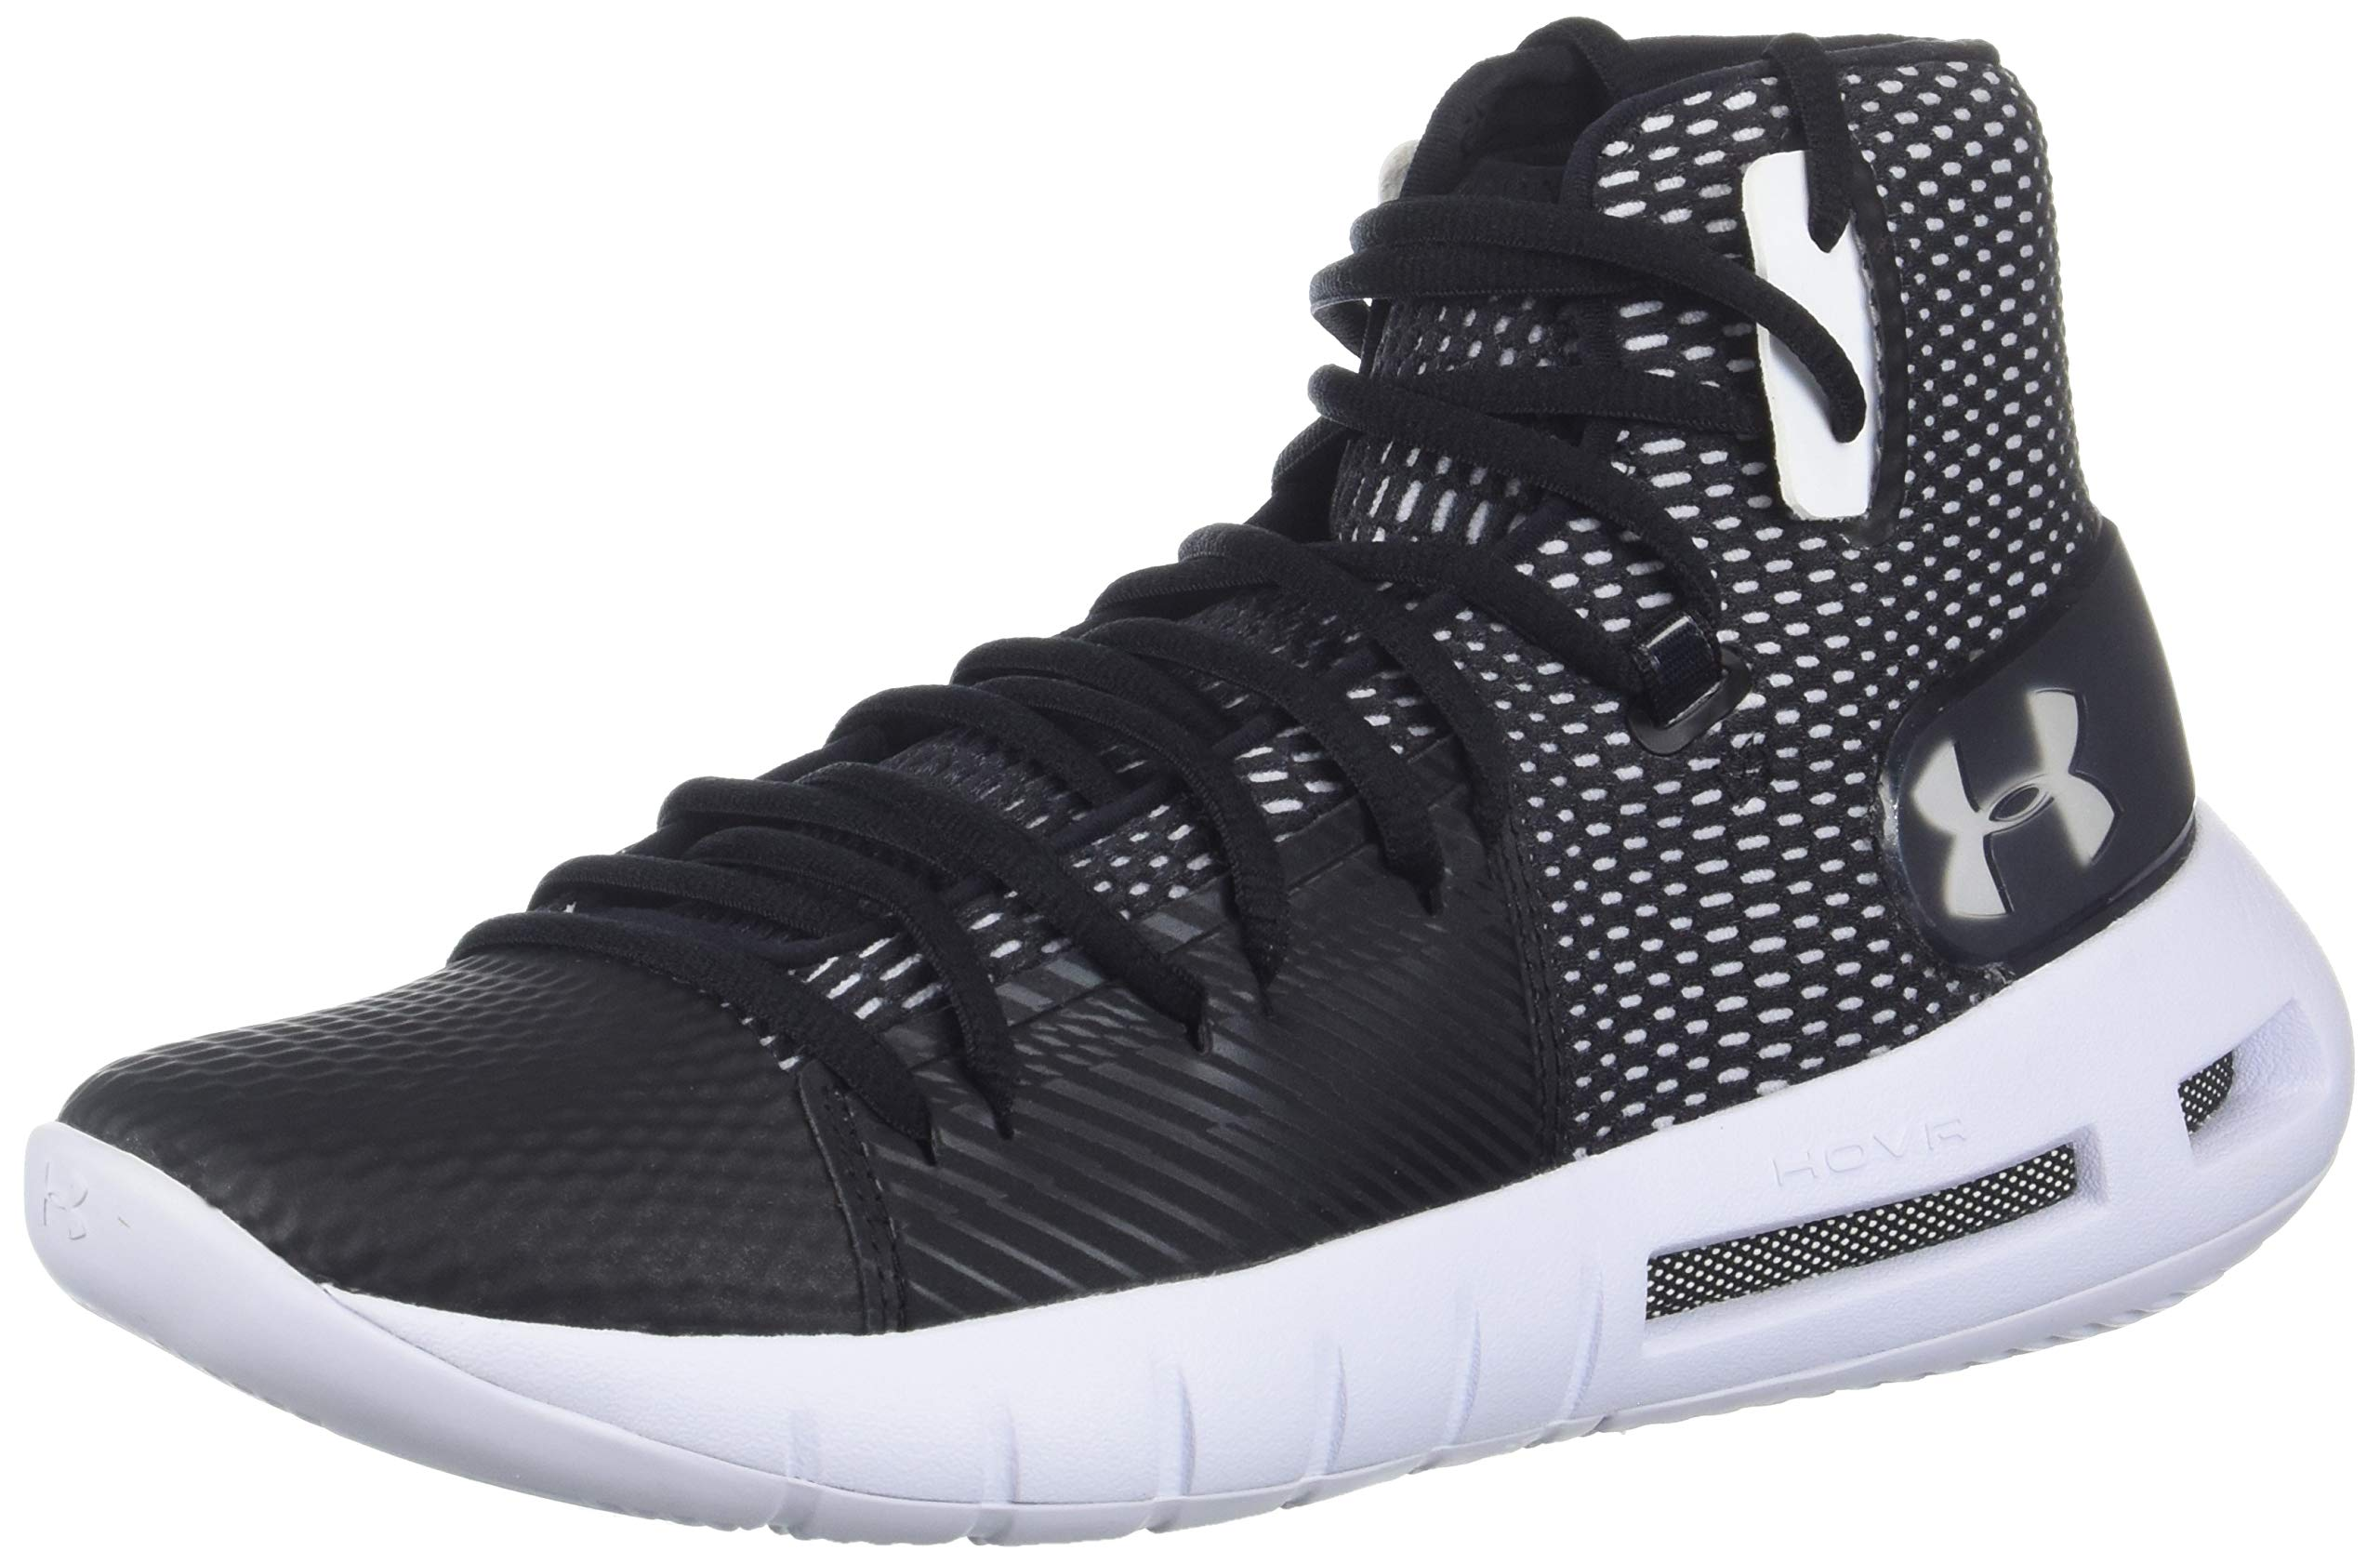 Under Armour Women's Drive 5 Basketball Shoe, Black (001)/White, 8 by Under Armour